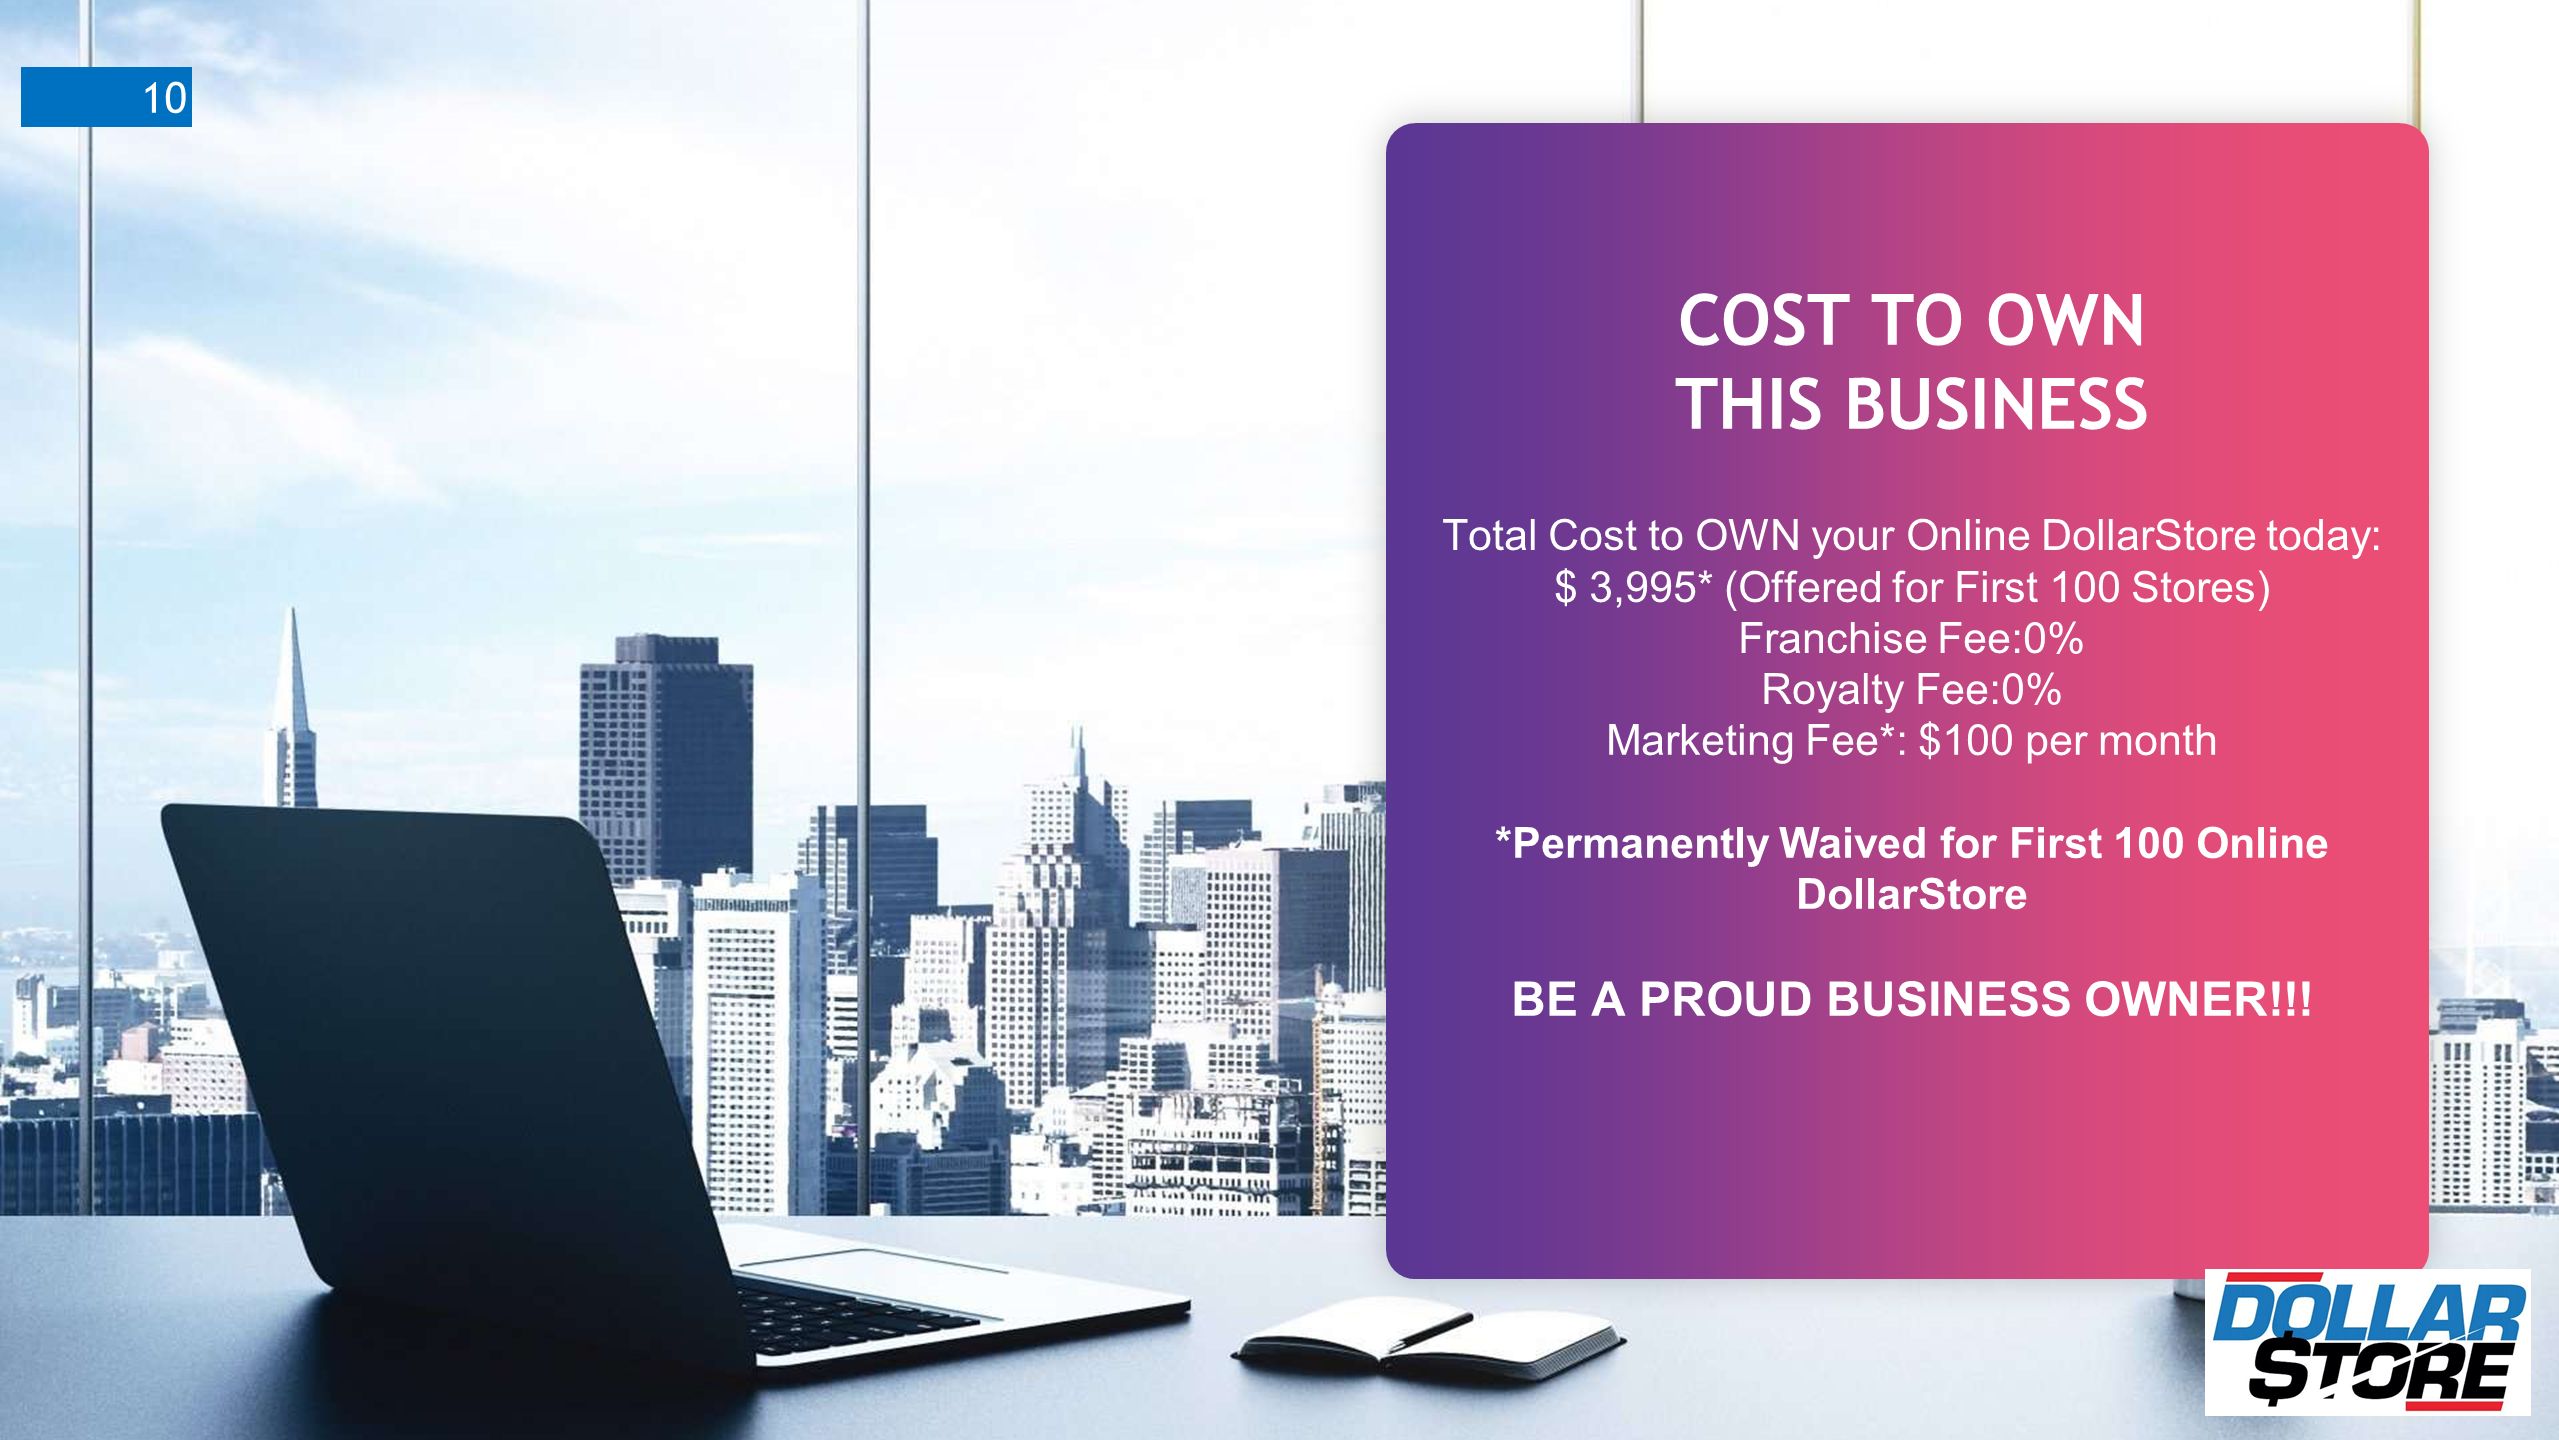 Cost to own a dollarstore business